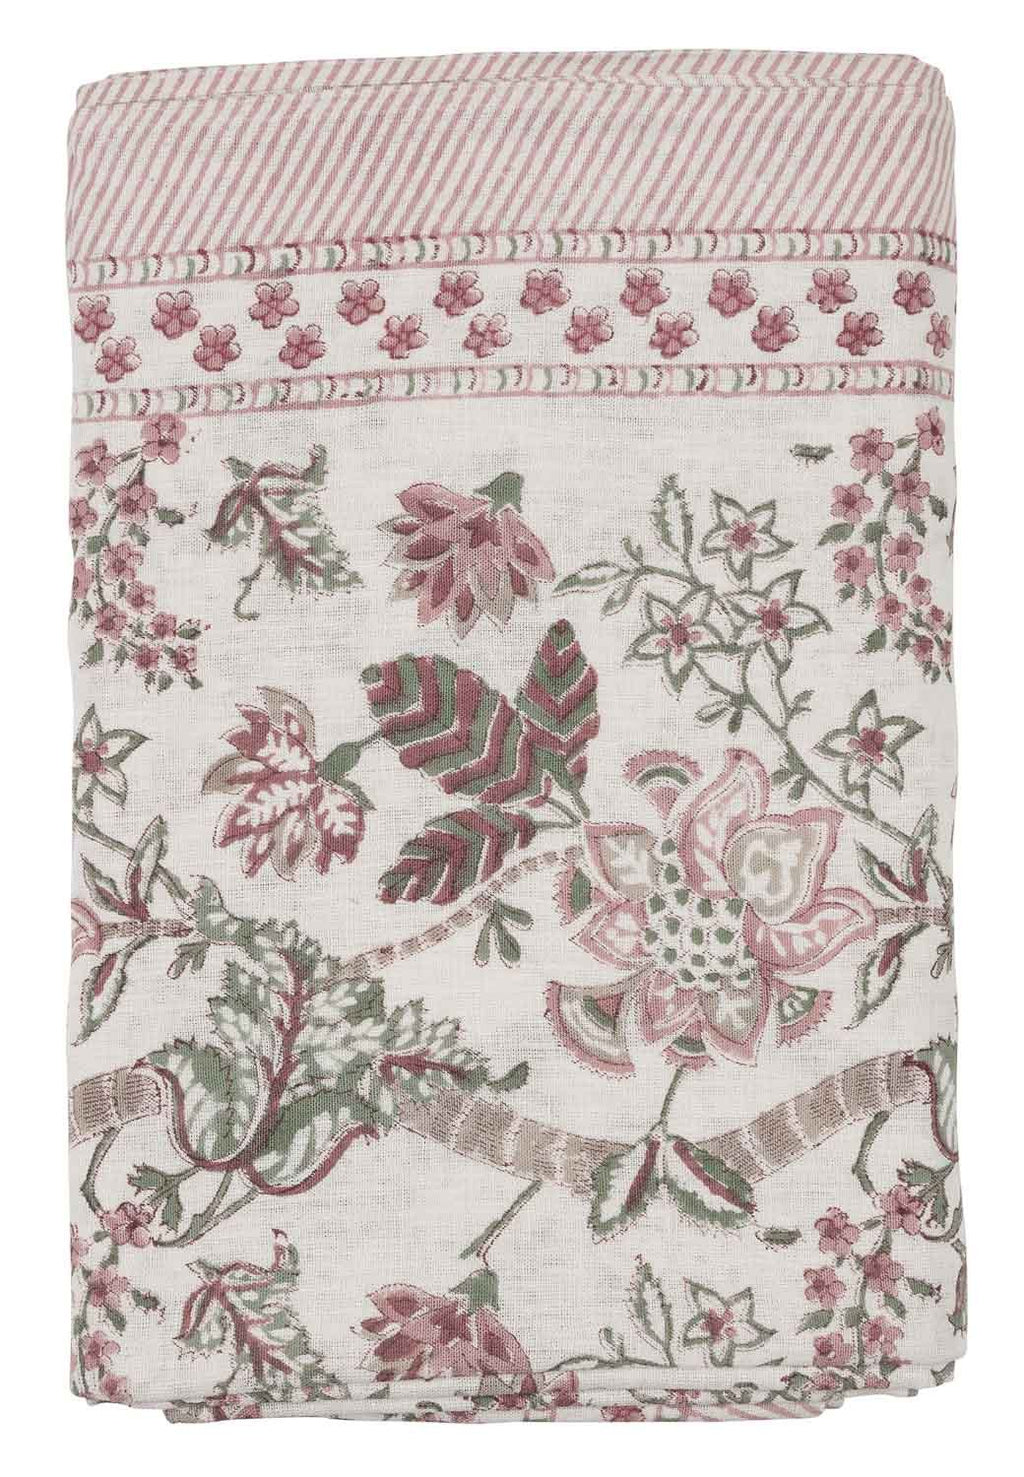 Tablecloth with a hand block printed Floral pattern in Ruby colour